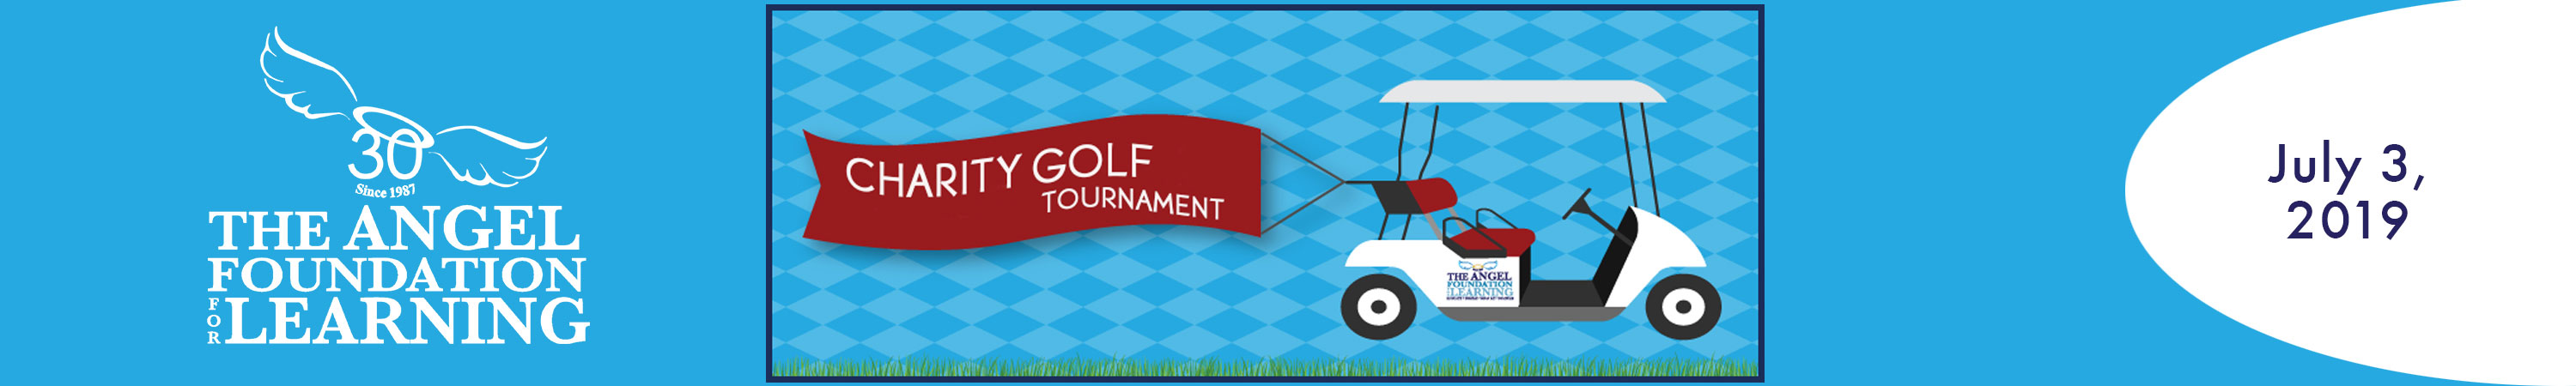 golf-tournament